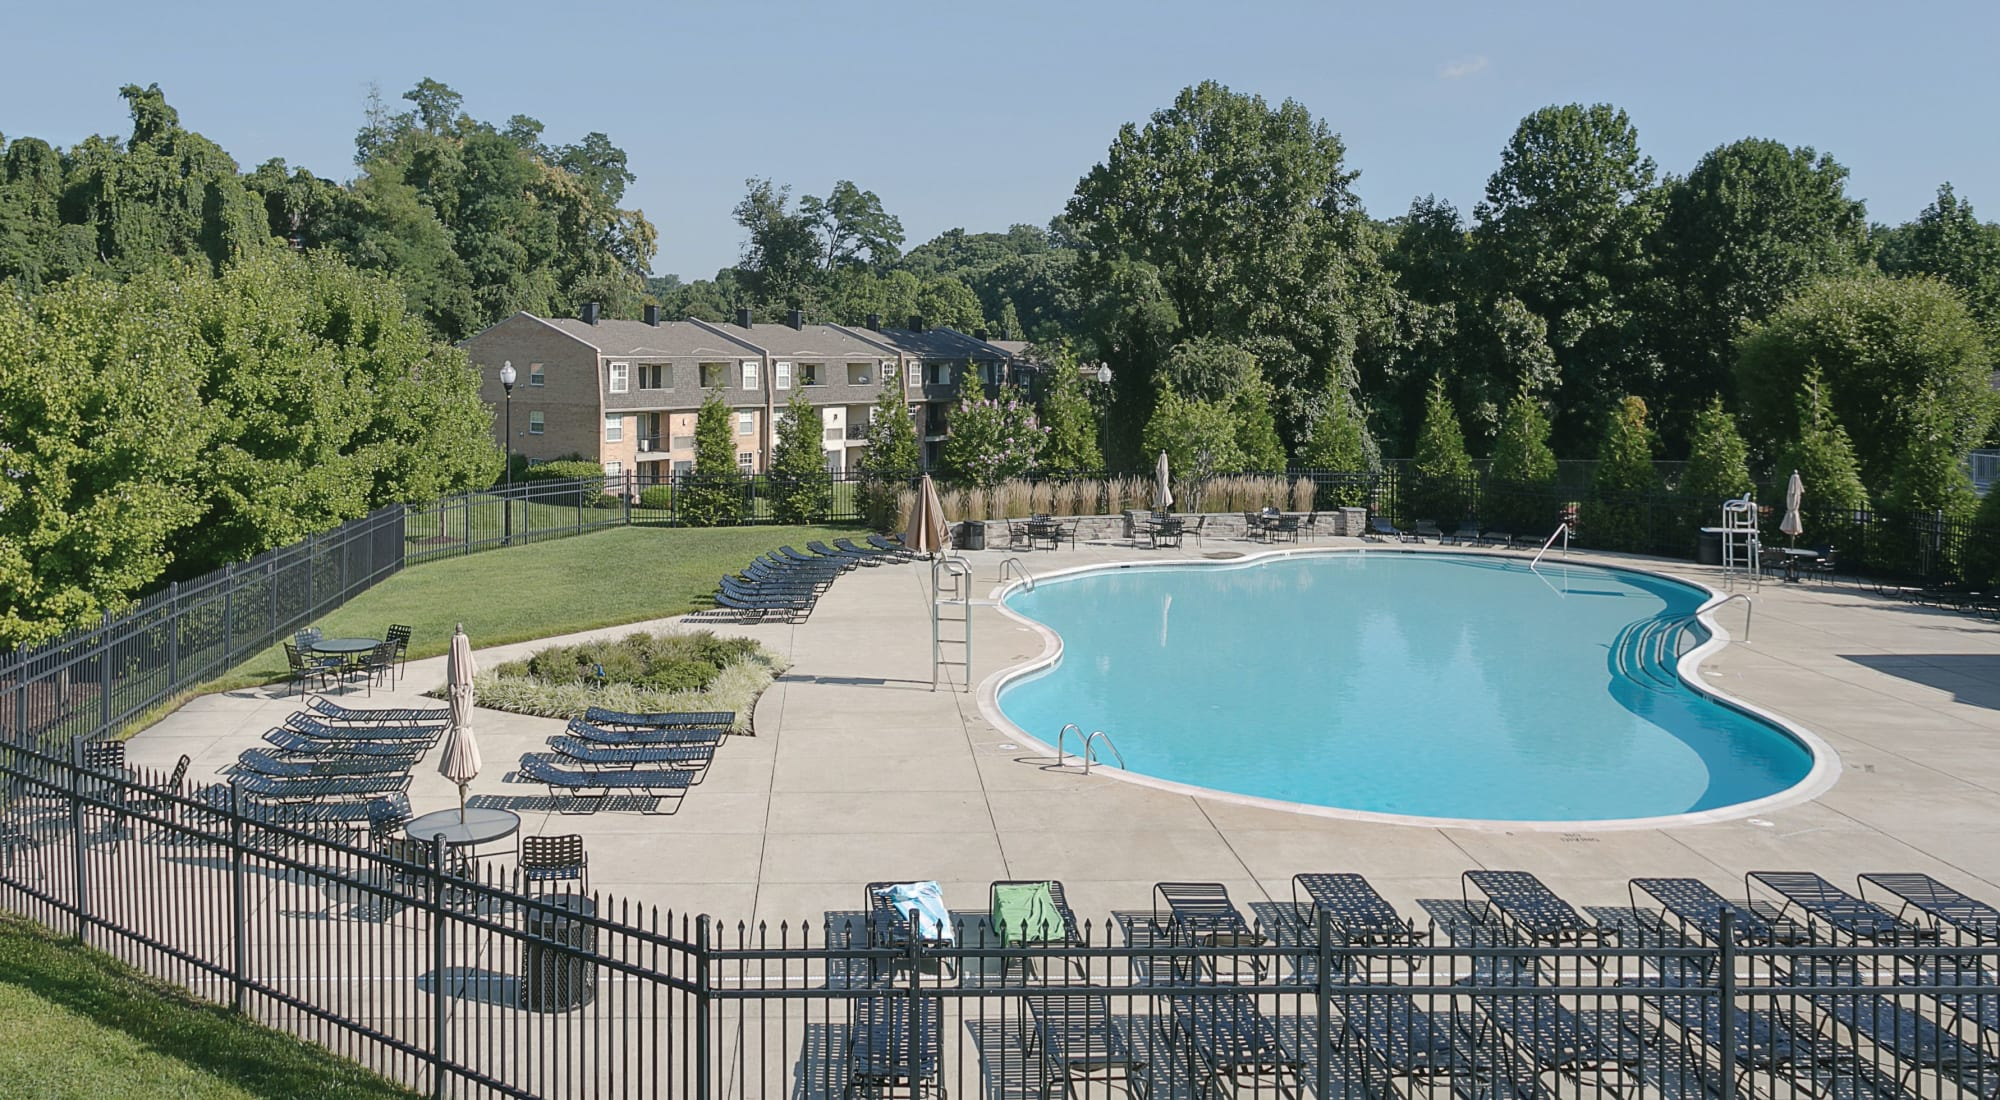 Amenities at Howard Crossing in Ellicott City, Maryland